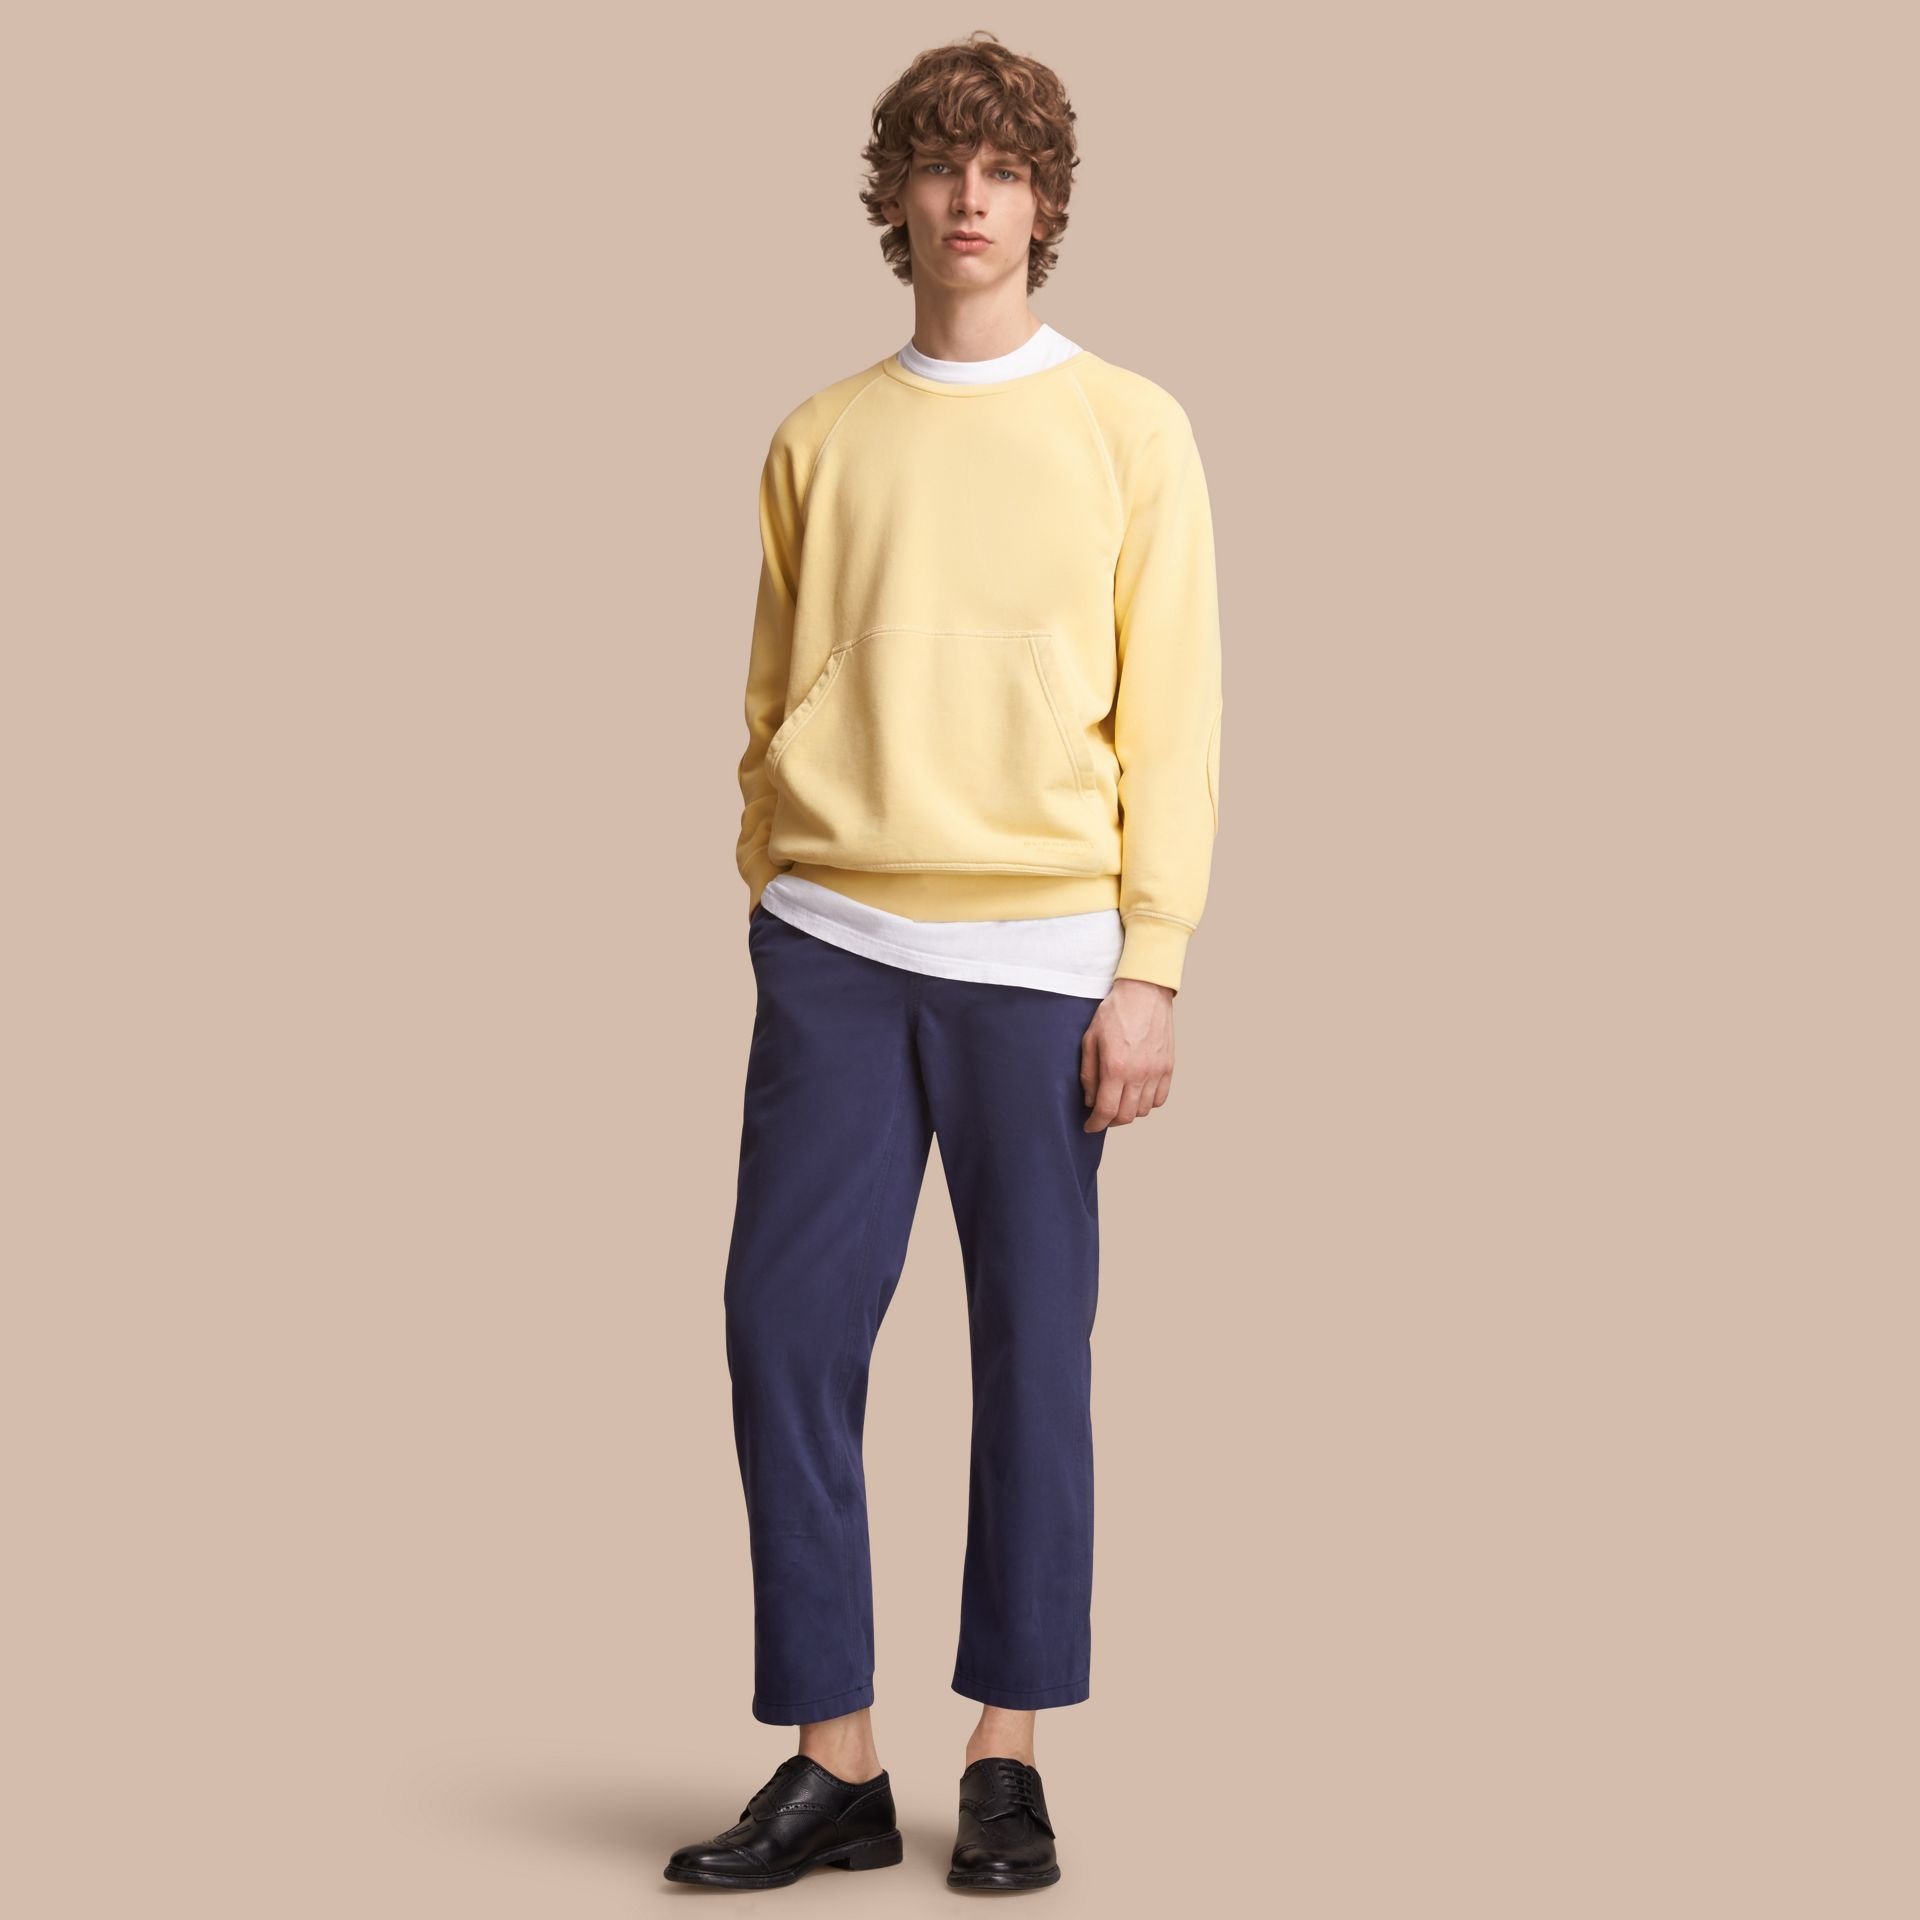 Unisex Pigment-dyed Cotton Oversize Sweatshirt in Pale Yellow - Men | Burberry - gallery image 1